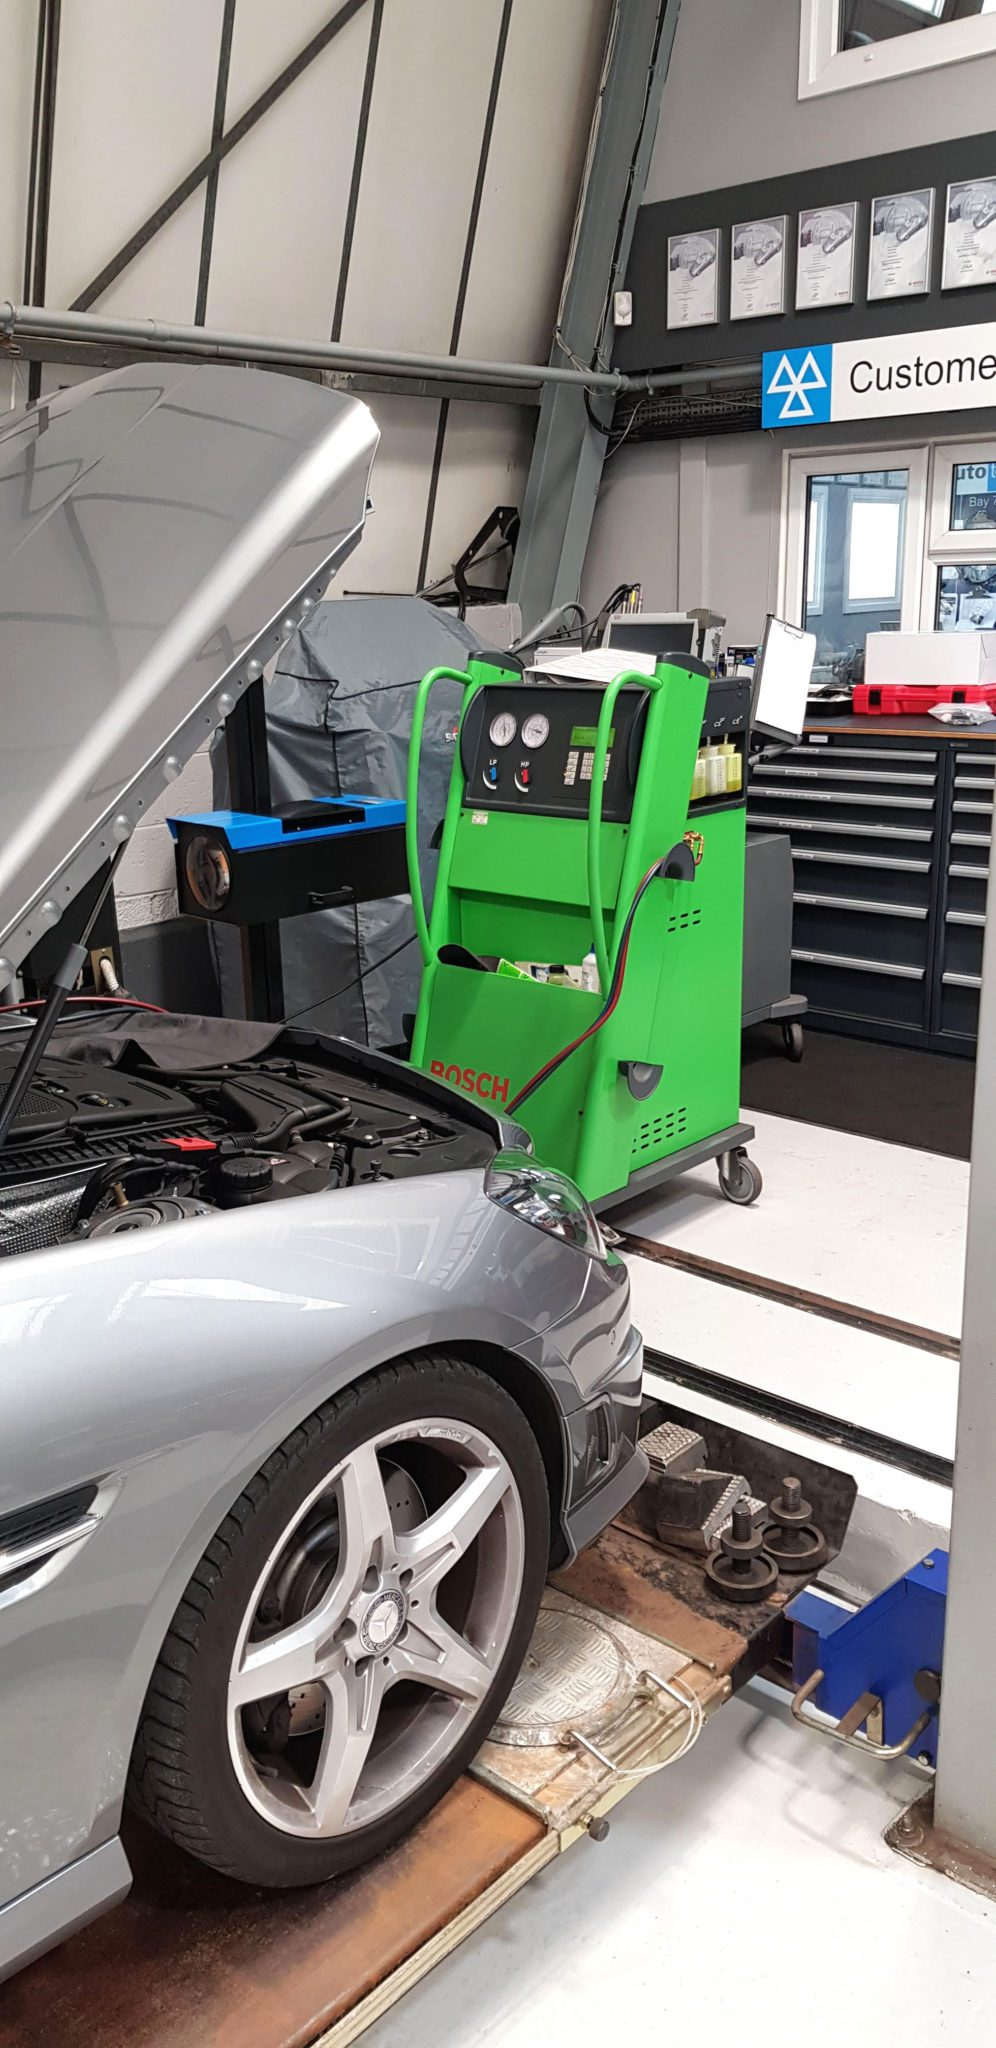 Air Conditioning - Audi | BMW | Mercedes | Seat | Skoda | VW